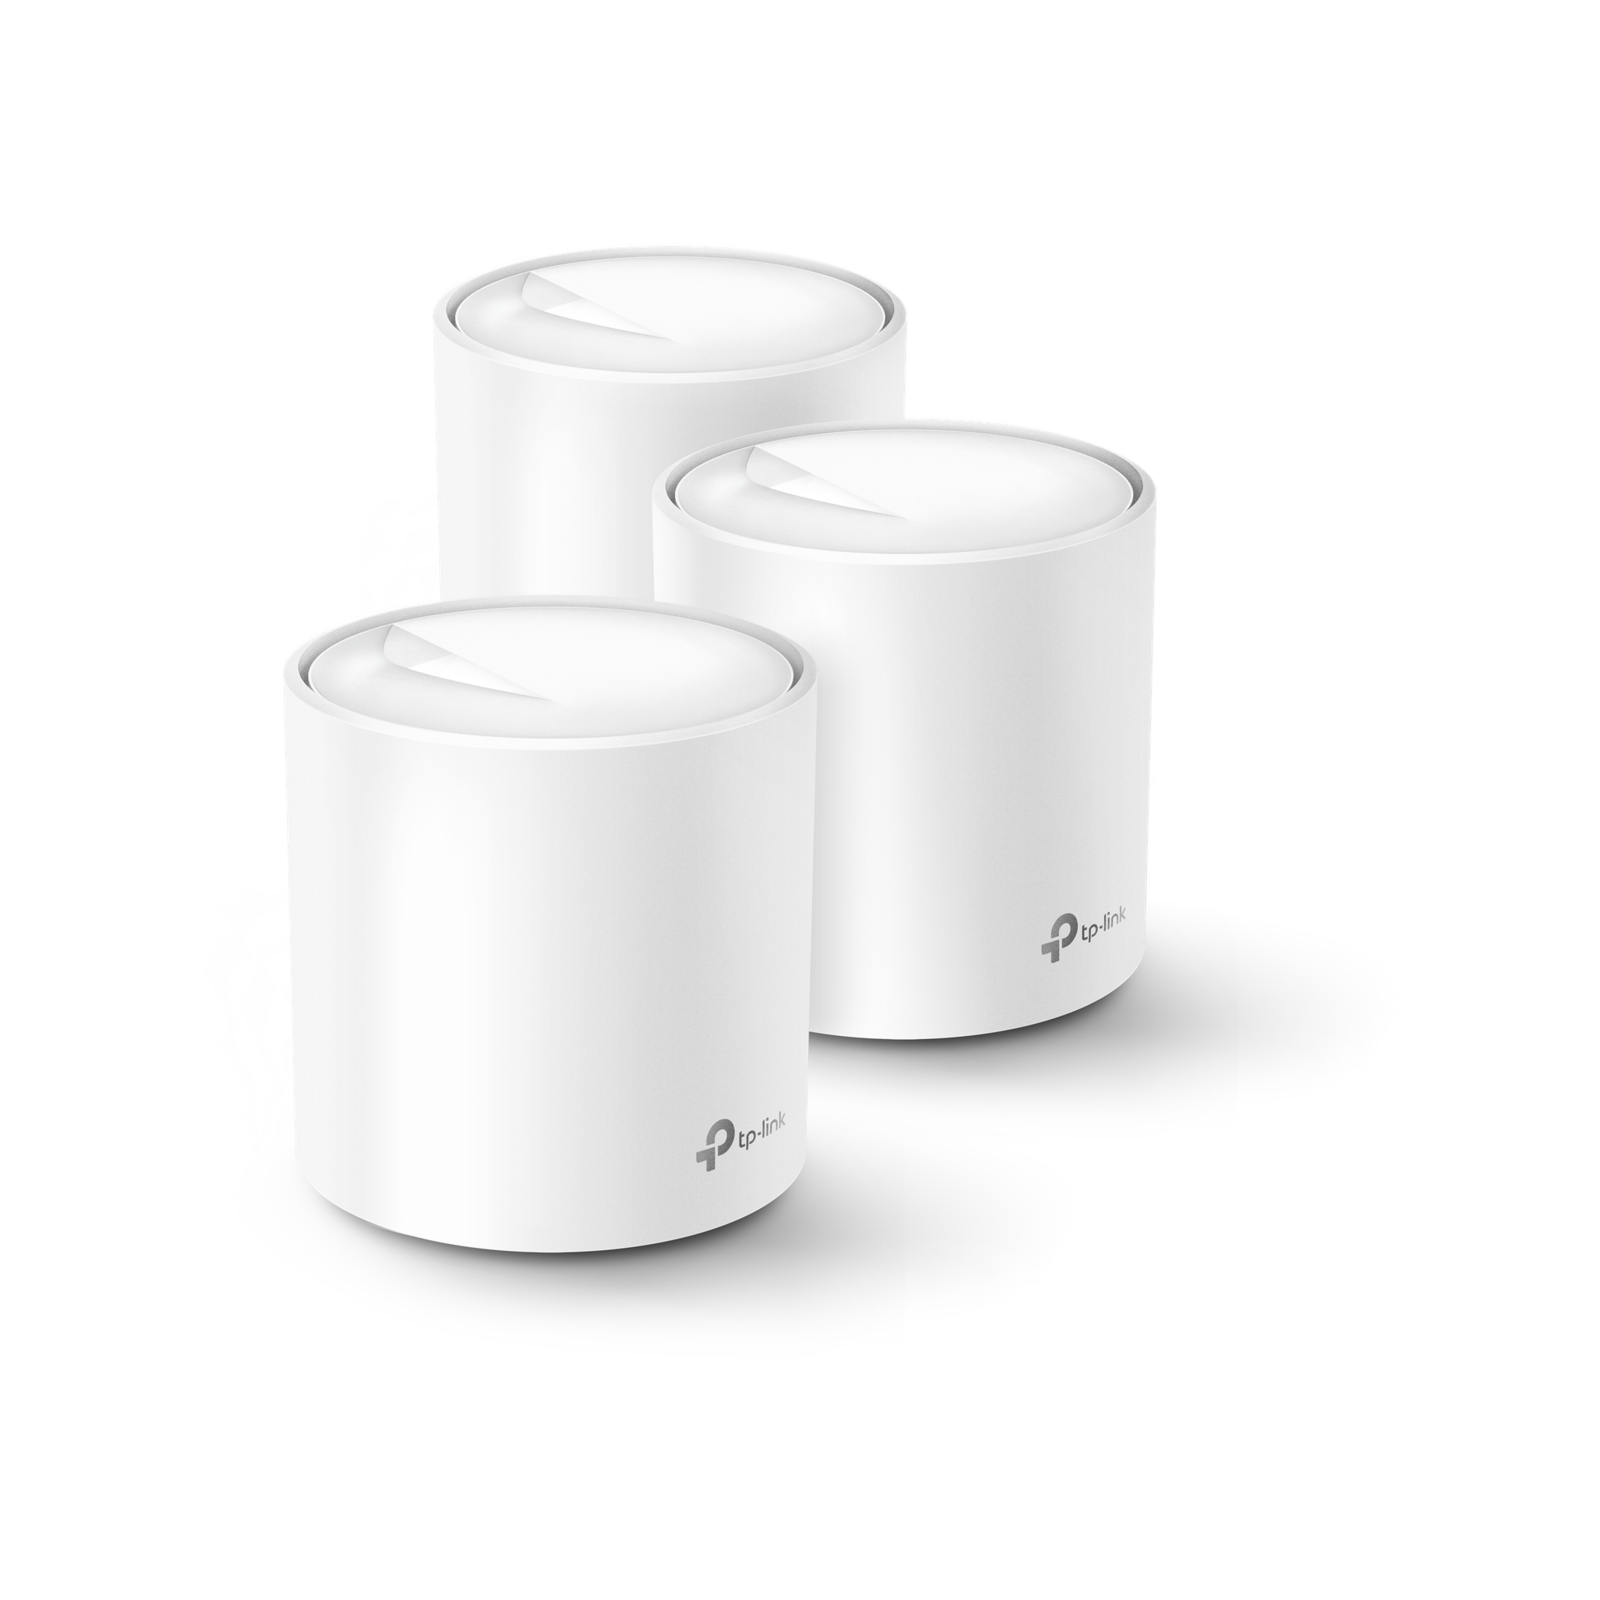 TP-Link Deco X60 Whole Home Mesh Wi-Fi Router - 3 Pack